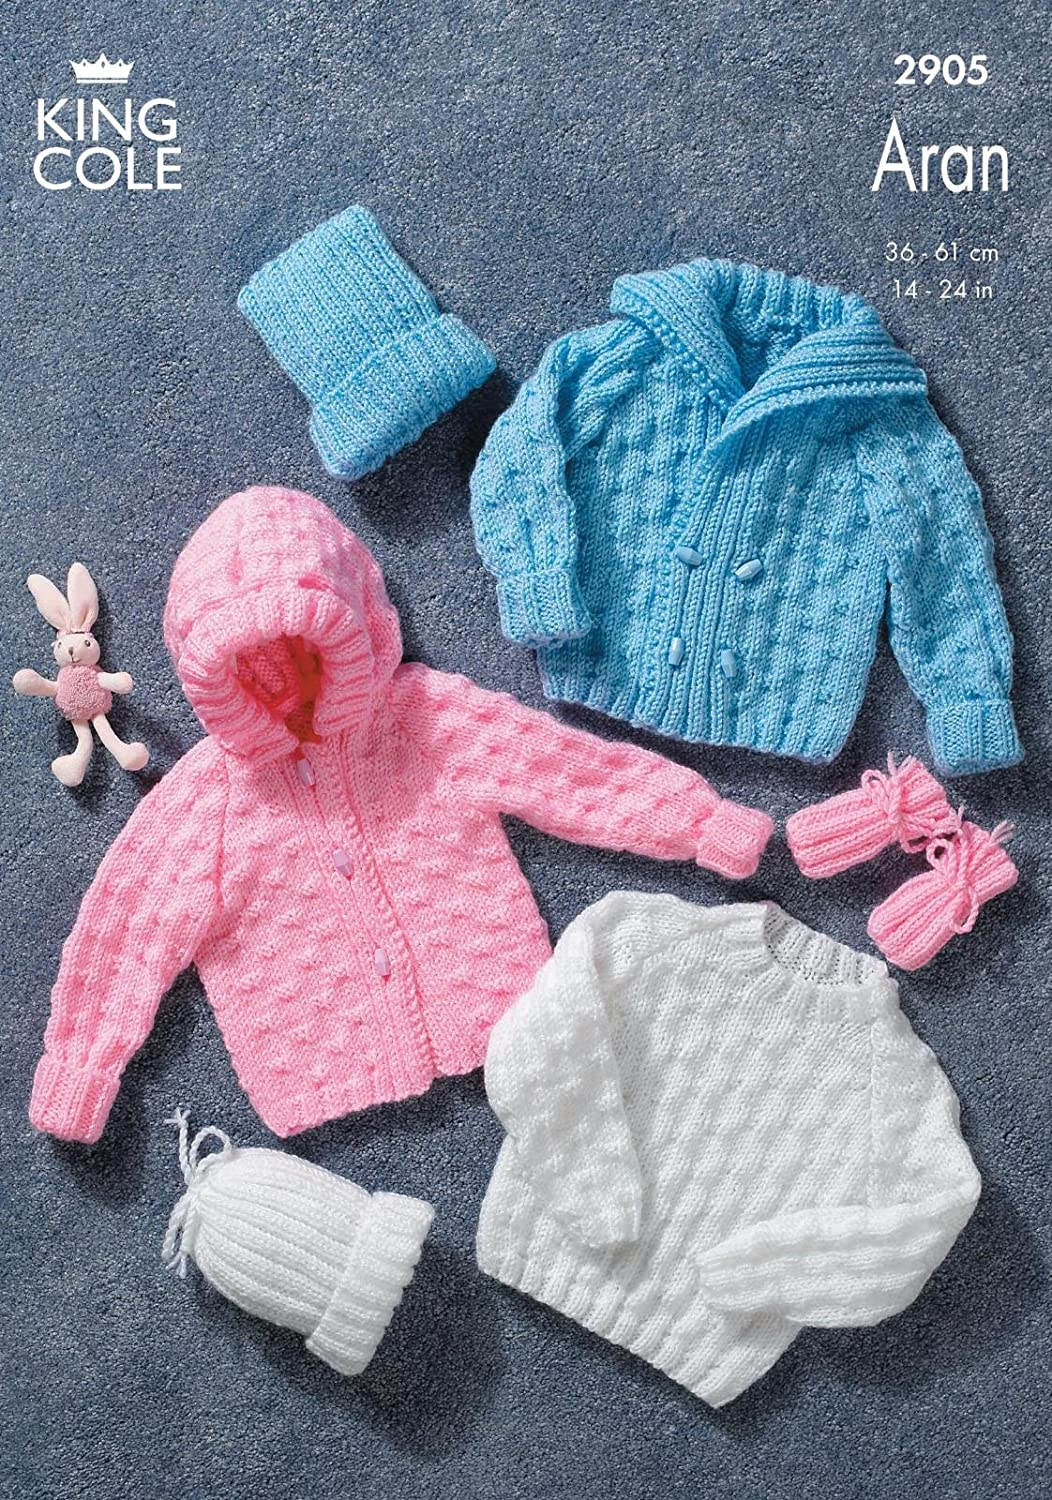 King cole baby sweater jacket mitts hat aran knitting pattern king cole baby sweater jacket mitts hat aran knitting pattern 2905 by king cole amazon kitchen home bankloansurffo Image collections